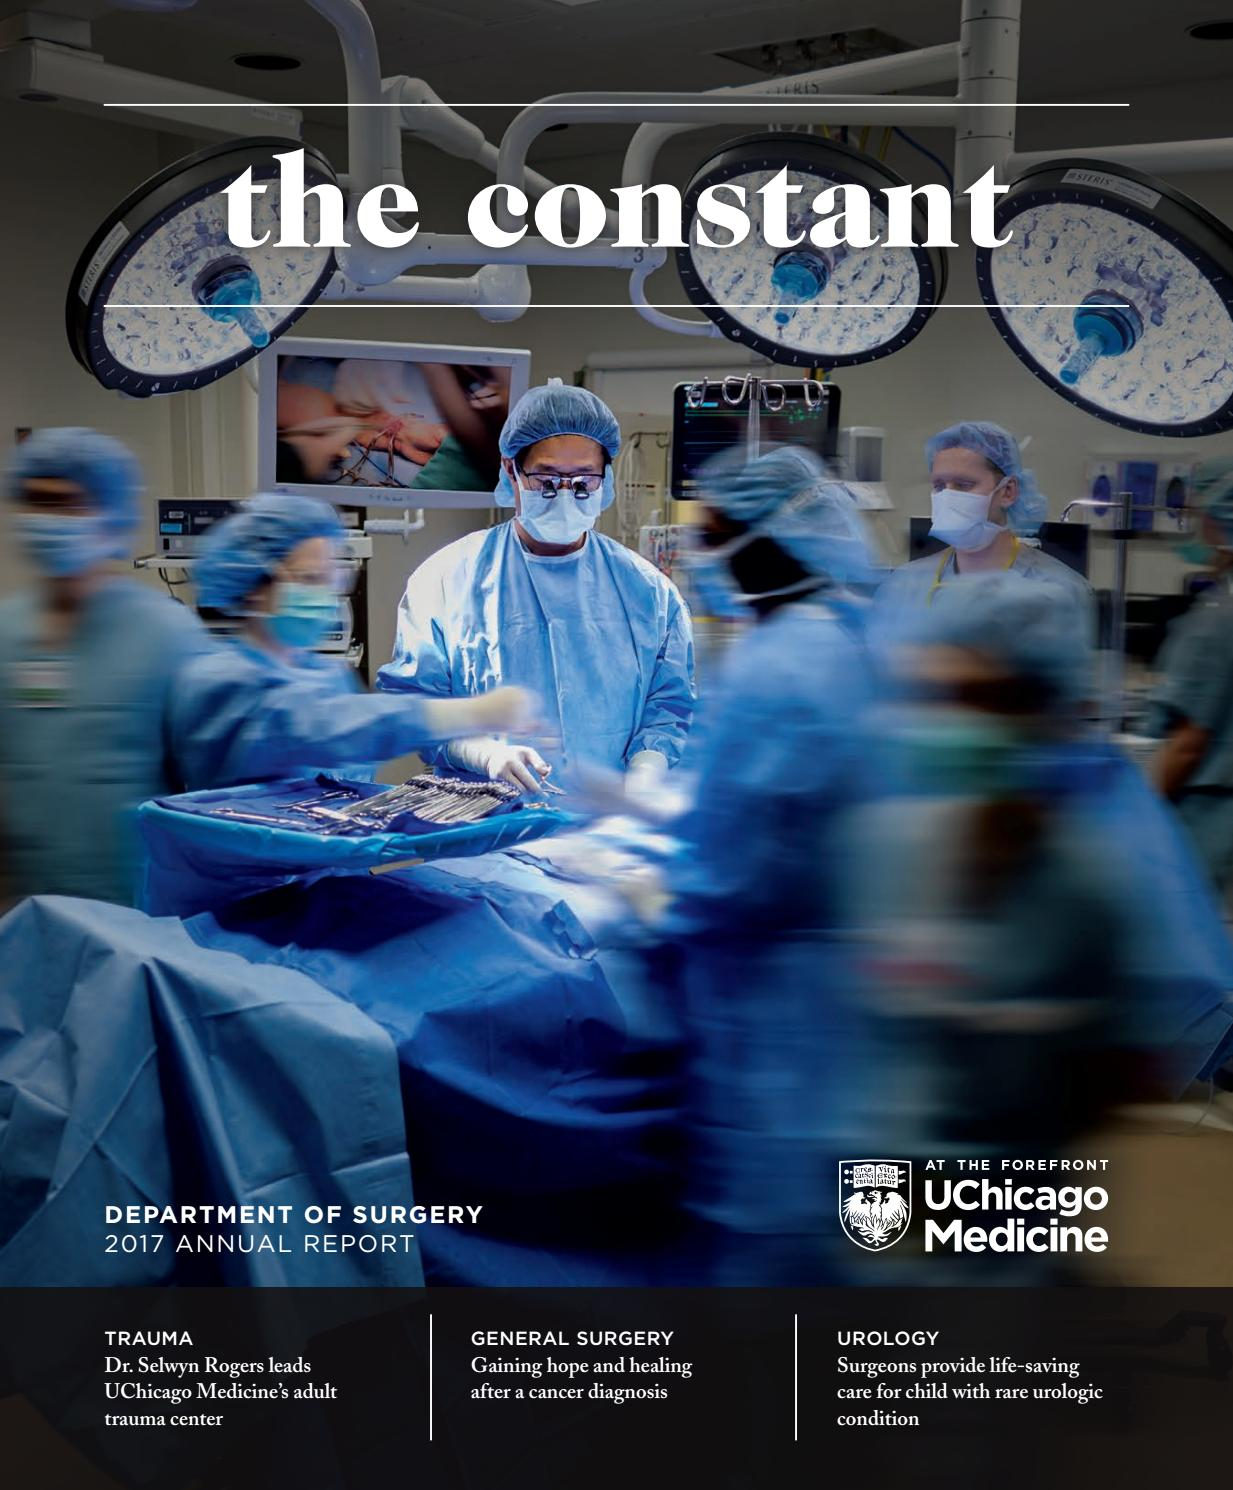 UChicago Medicine 2017 Department of Surgery Annual Report